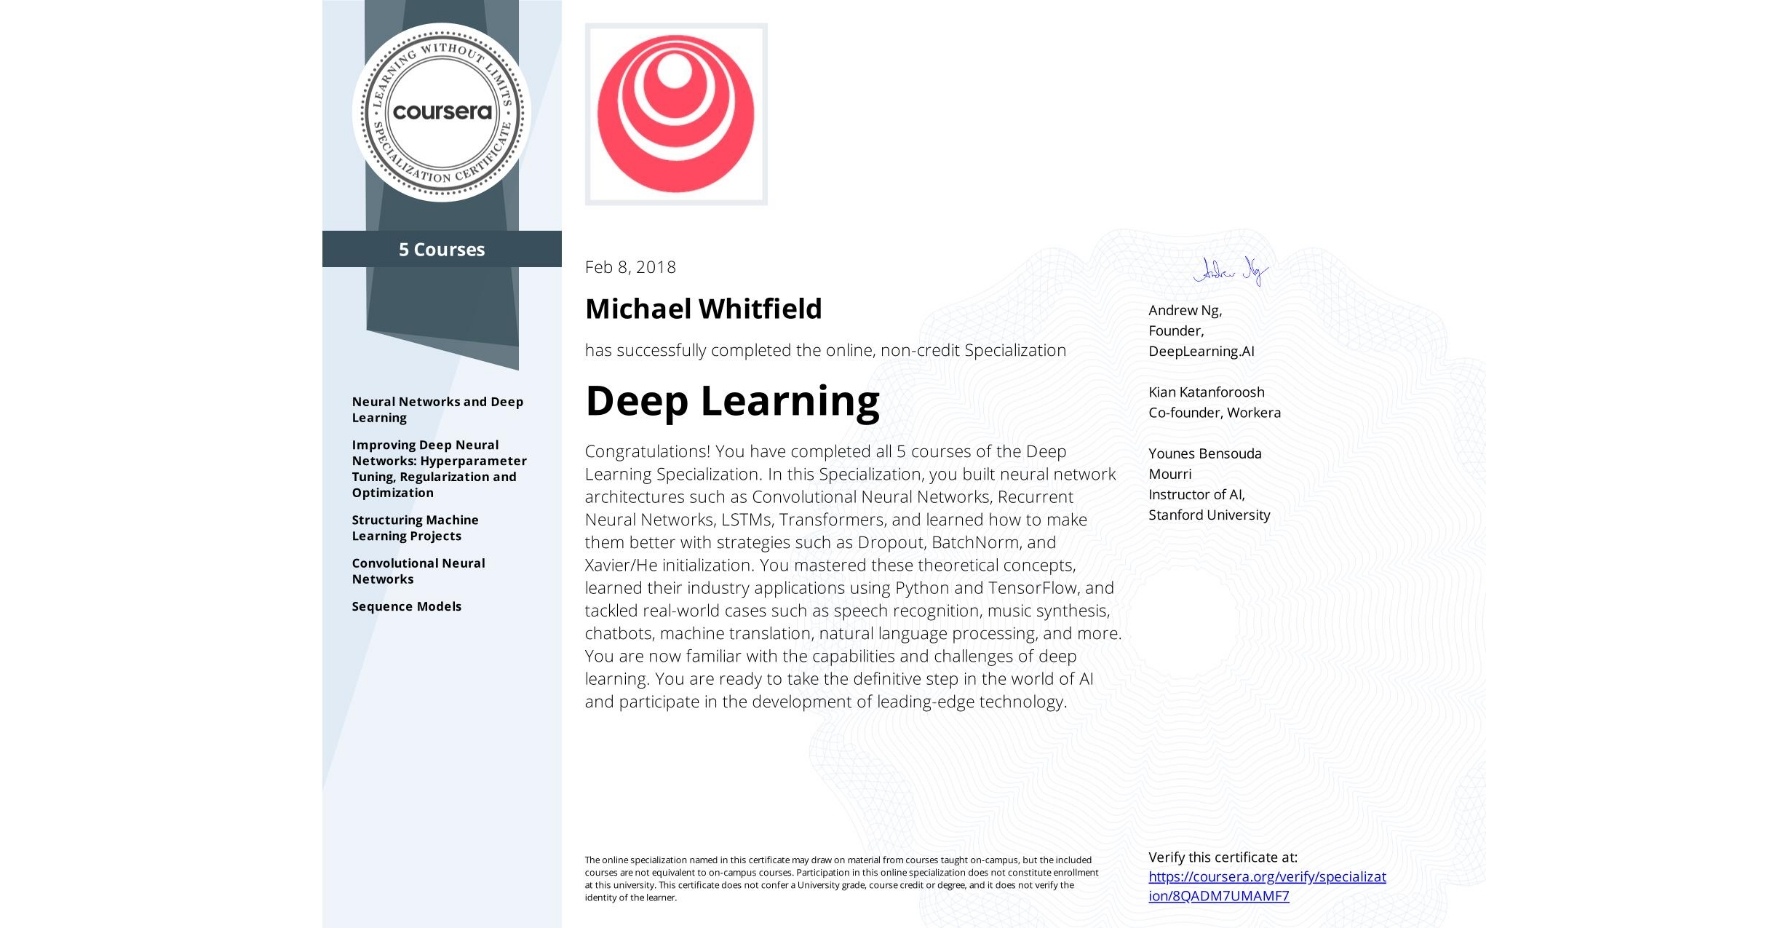 View certificate for Michael Whitfield, Deep Learning, offered through Coursera. The Deep Learning Specialization is designed to prepare learners to participate in the development of cutting-edge AI technology, and to understand the capability, the challenges, and the consequences of the rise of deep learning. Through five interconnected courses, learners develop a profound knowledge of the hottest AI algorithms, mastering deep learning from its foundations (neural networks) to its industry applications (Computer Vision, Natural Language Processing, Speech Recognition, etc.).